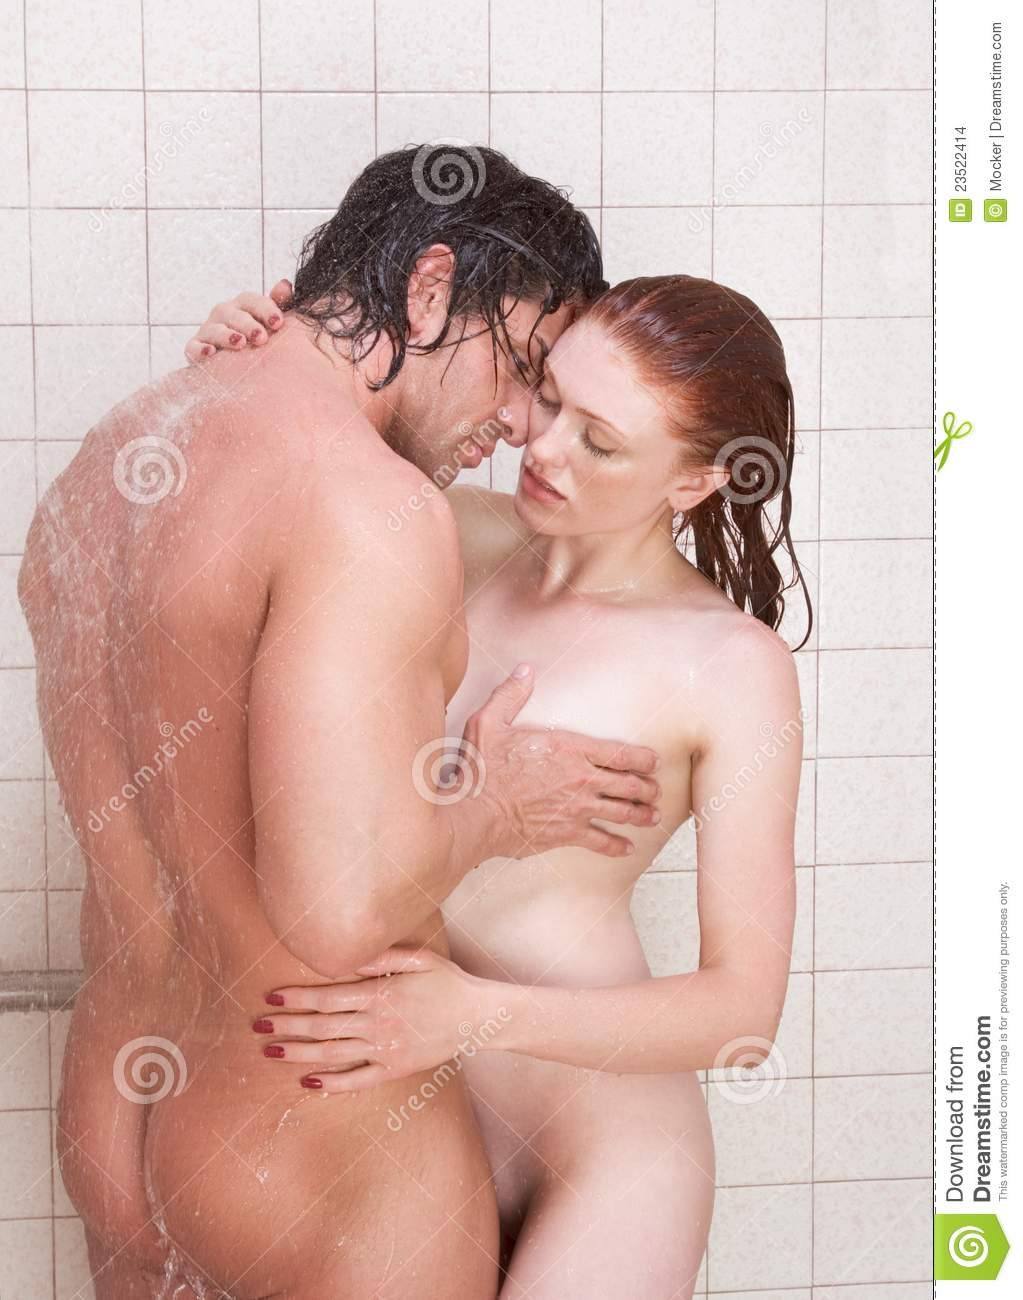 Nude Men And Women Bathing Together - Xxx Gallery-7369